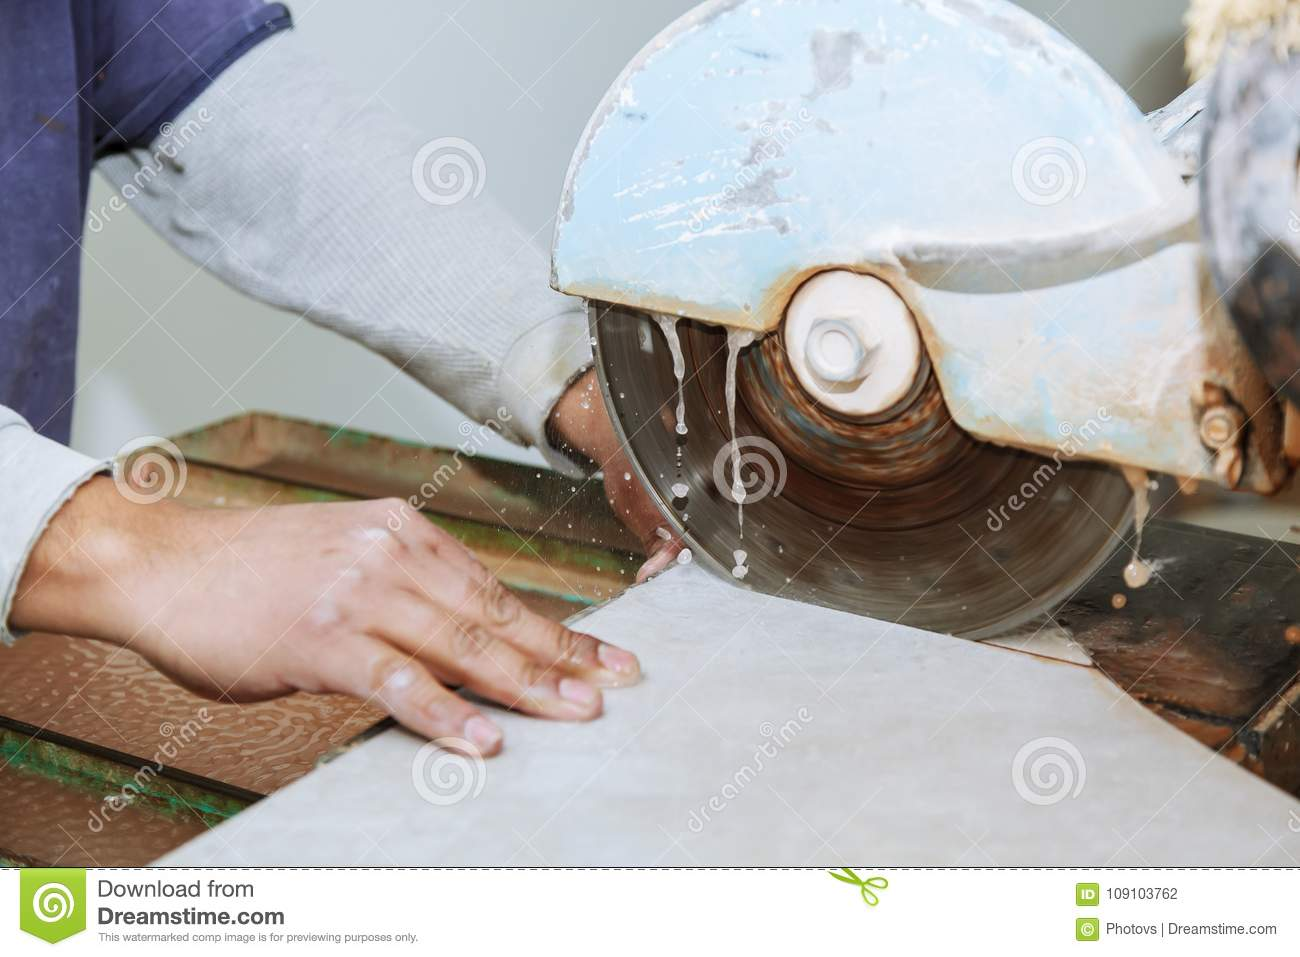 Manual Cutting Of Ceramic Tiles On A Special Machine For Cutting